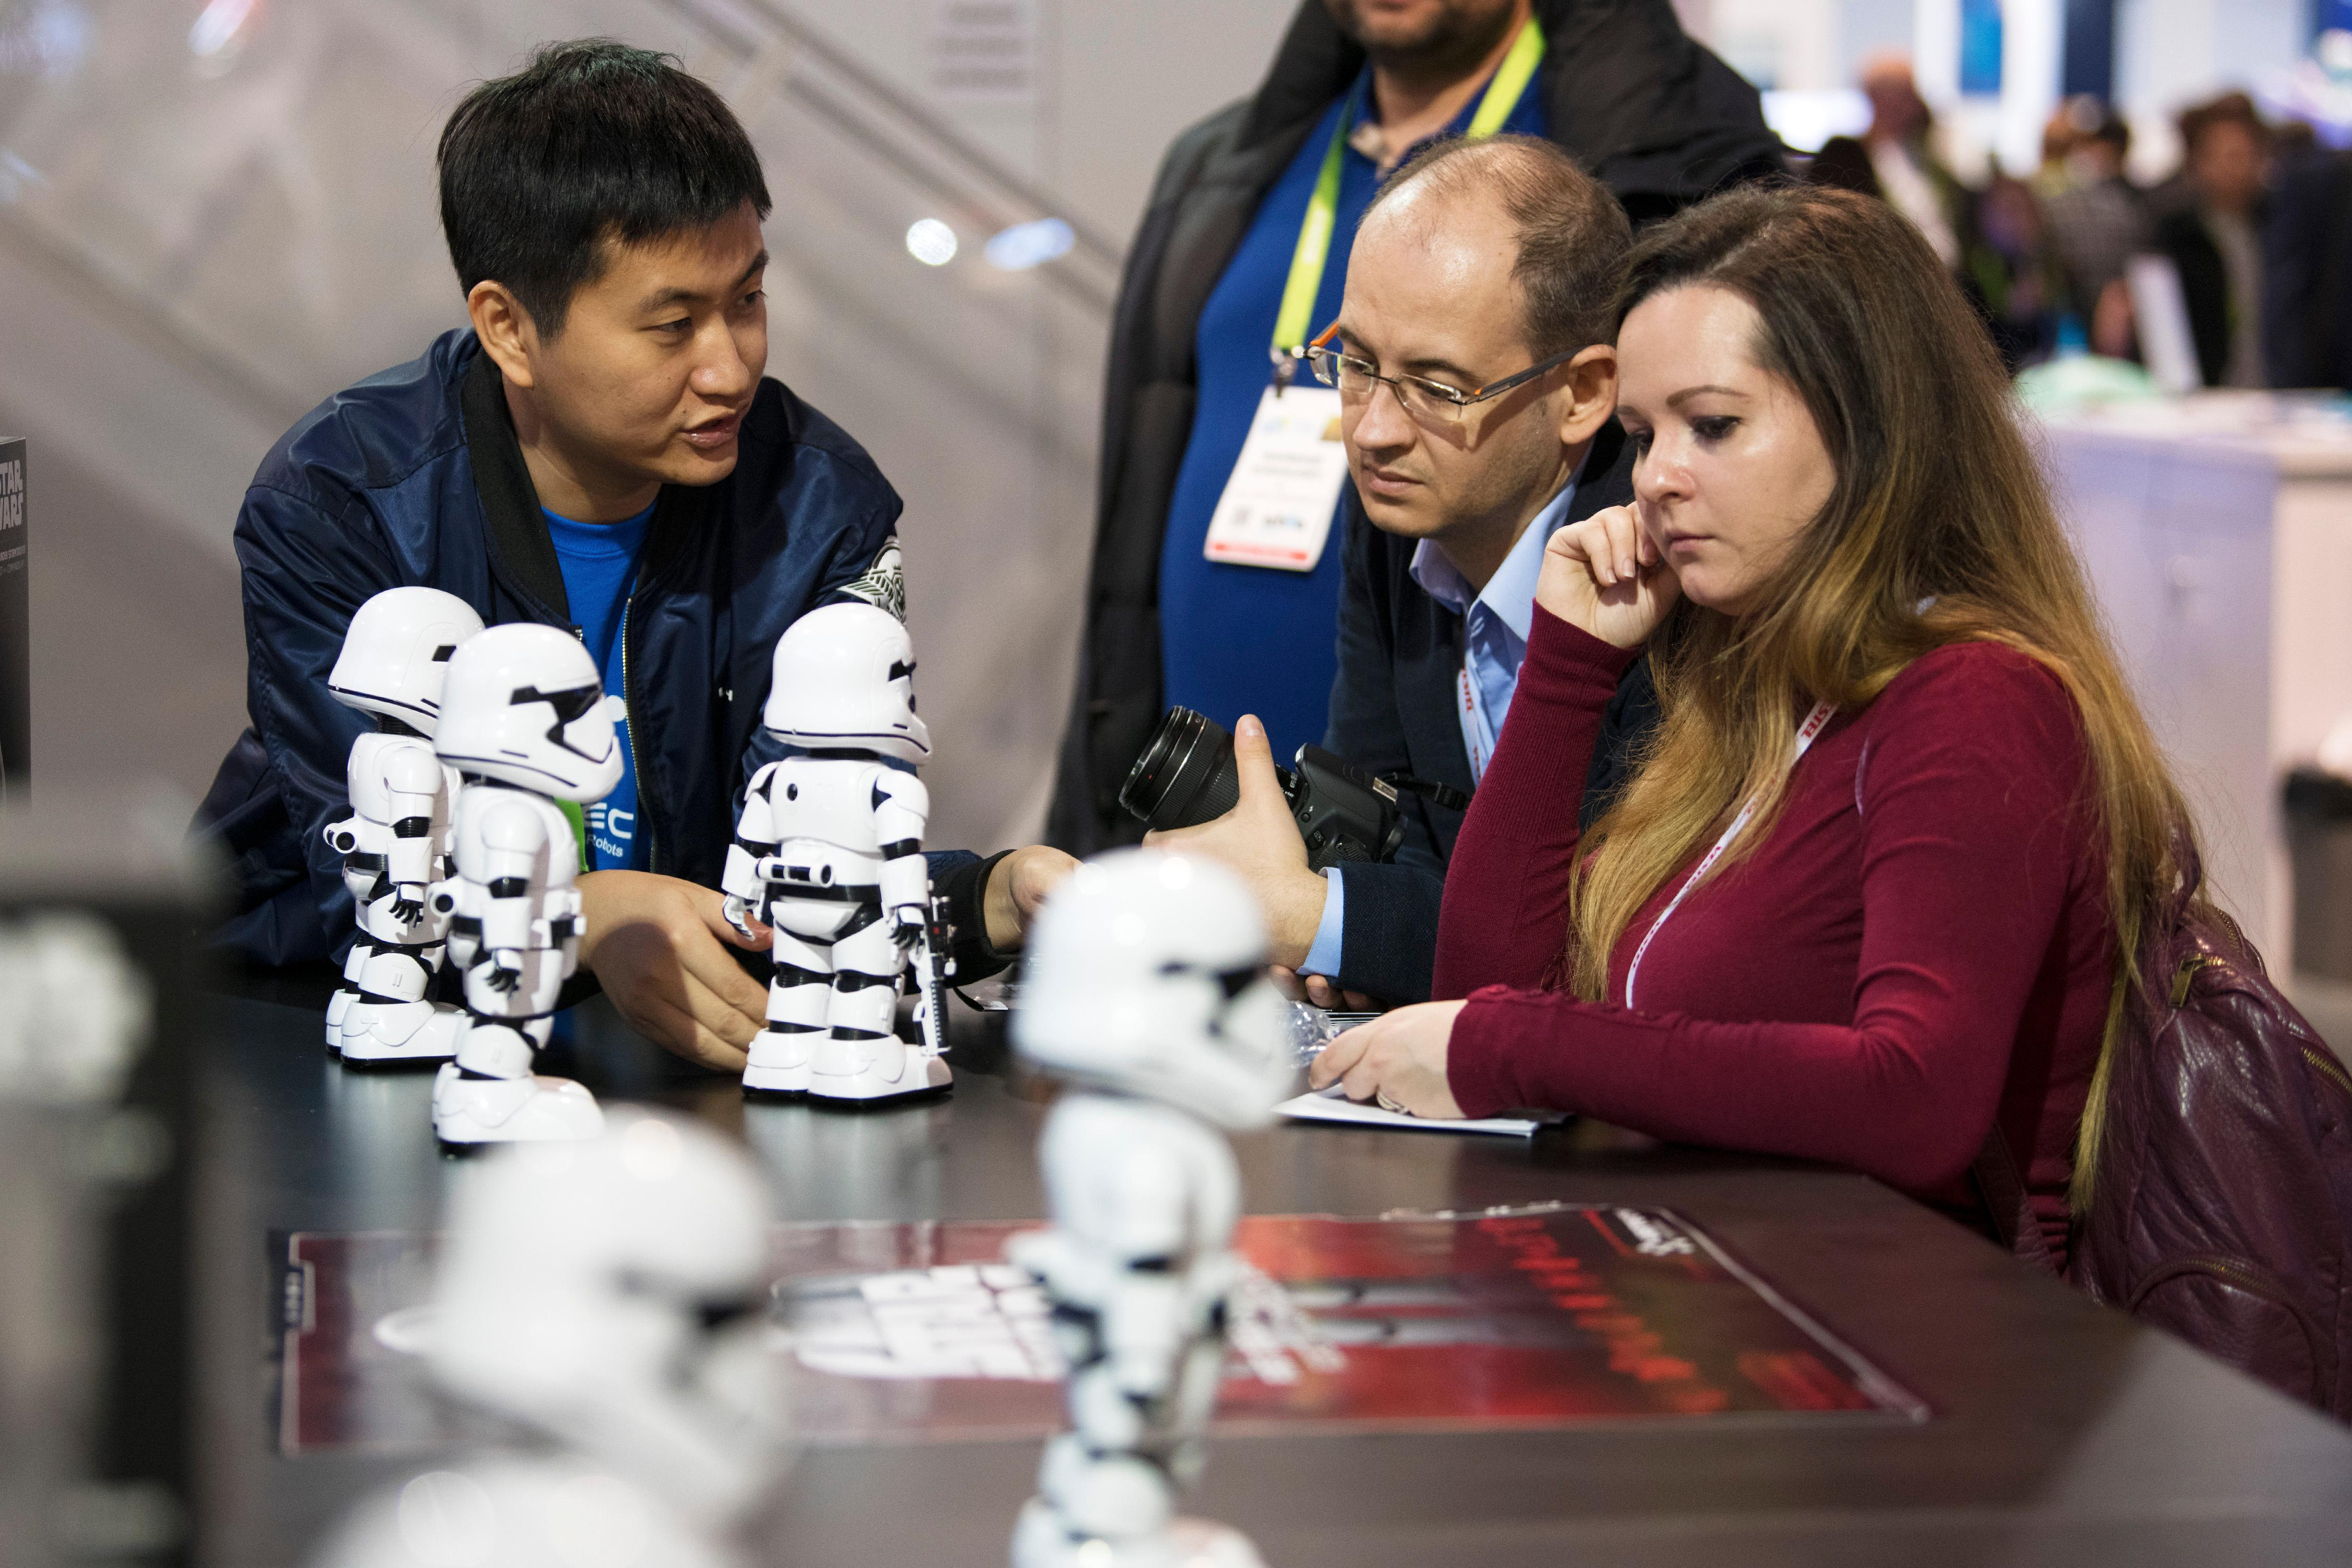 Wilson Chen from Ubtech demonstrates robotic New Order Stormtroopers from the most recent Star Wars film during the second day of CES Wednesday, January 10, 2018, at the Las Vegas Convention Center. CREDIT: Sam Morris/Las Vegas News Bureau